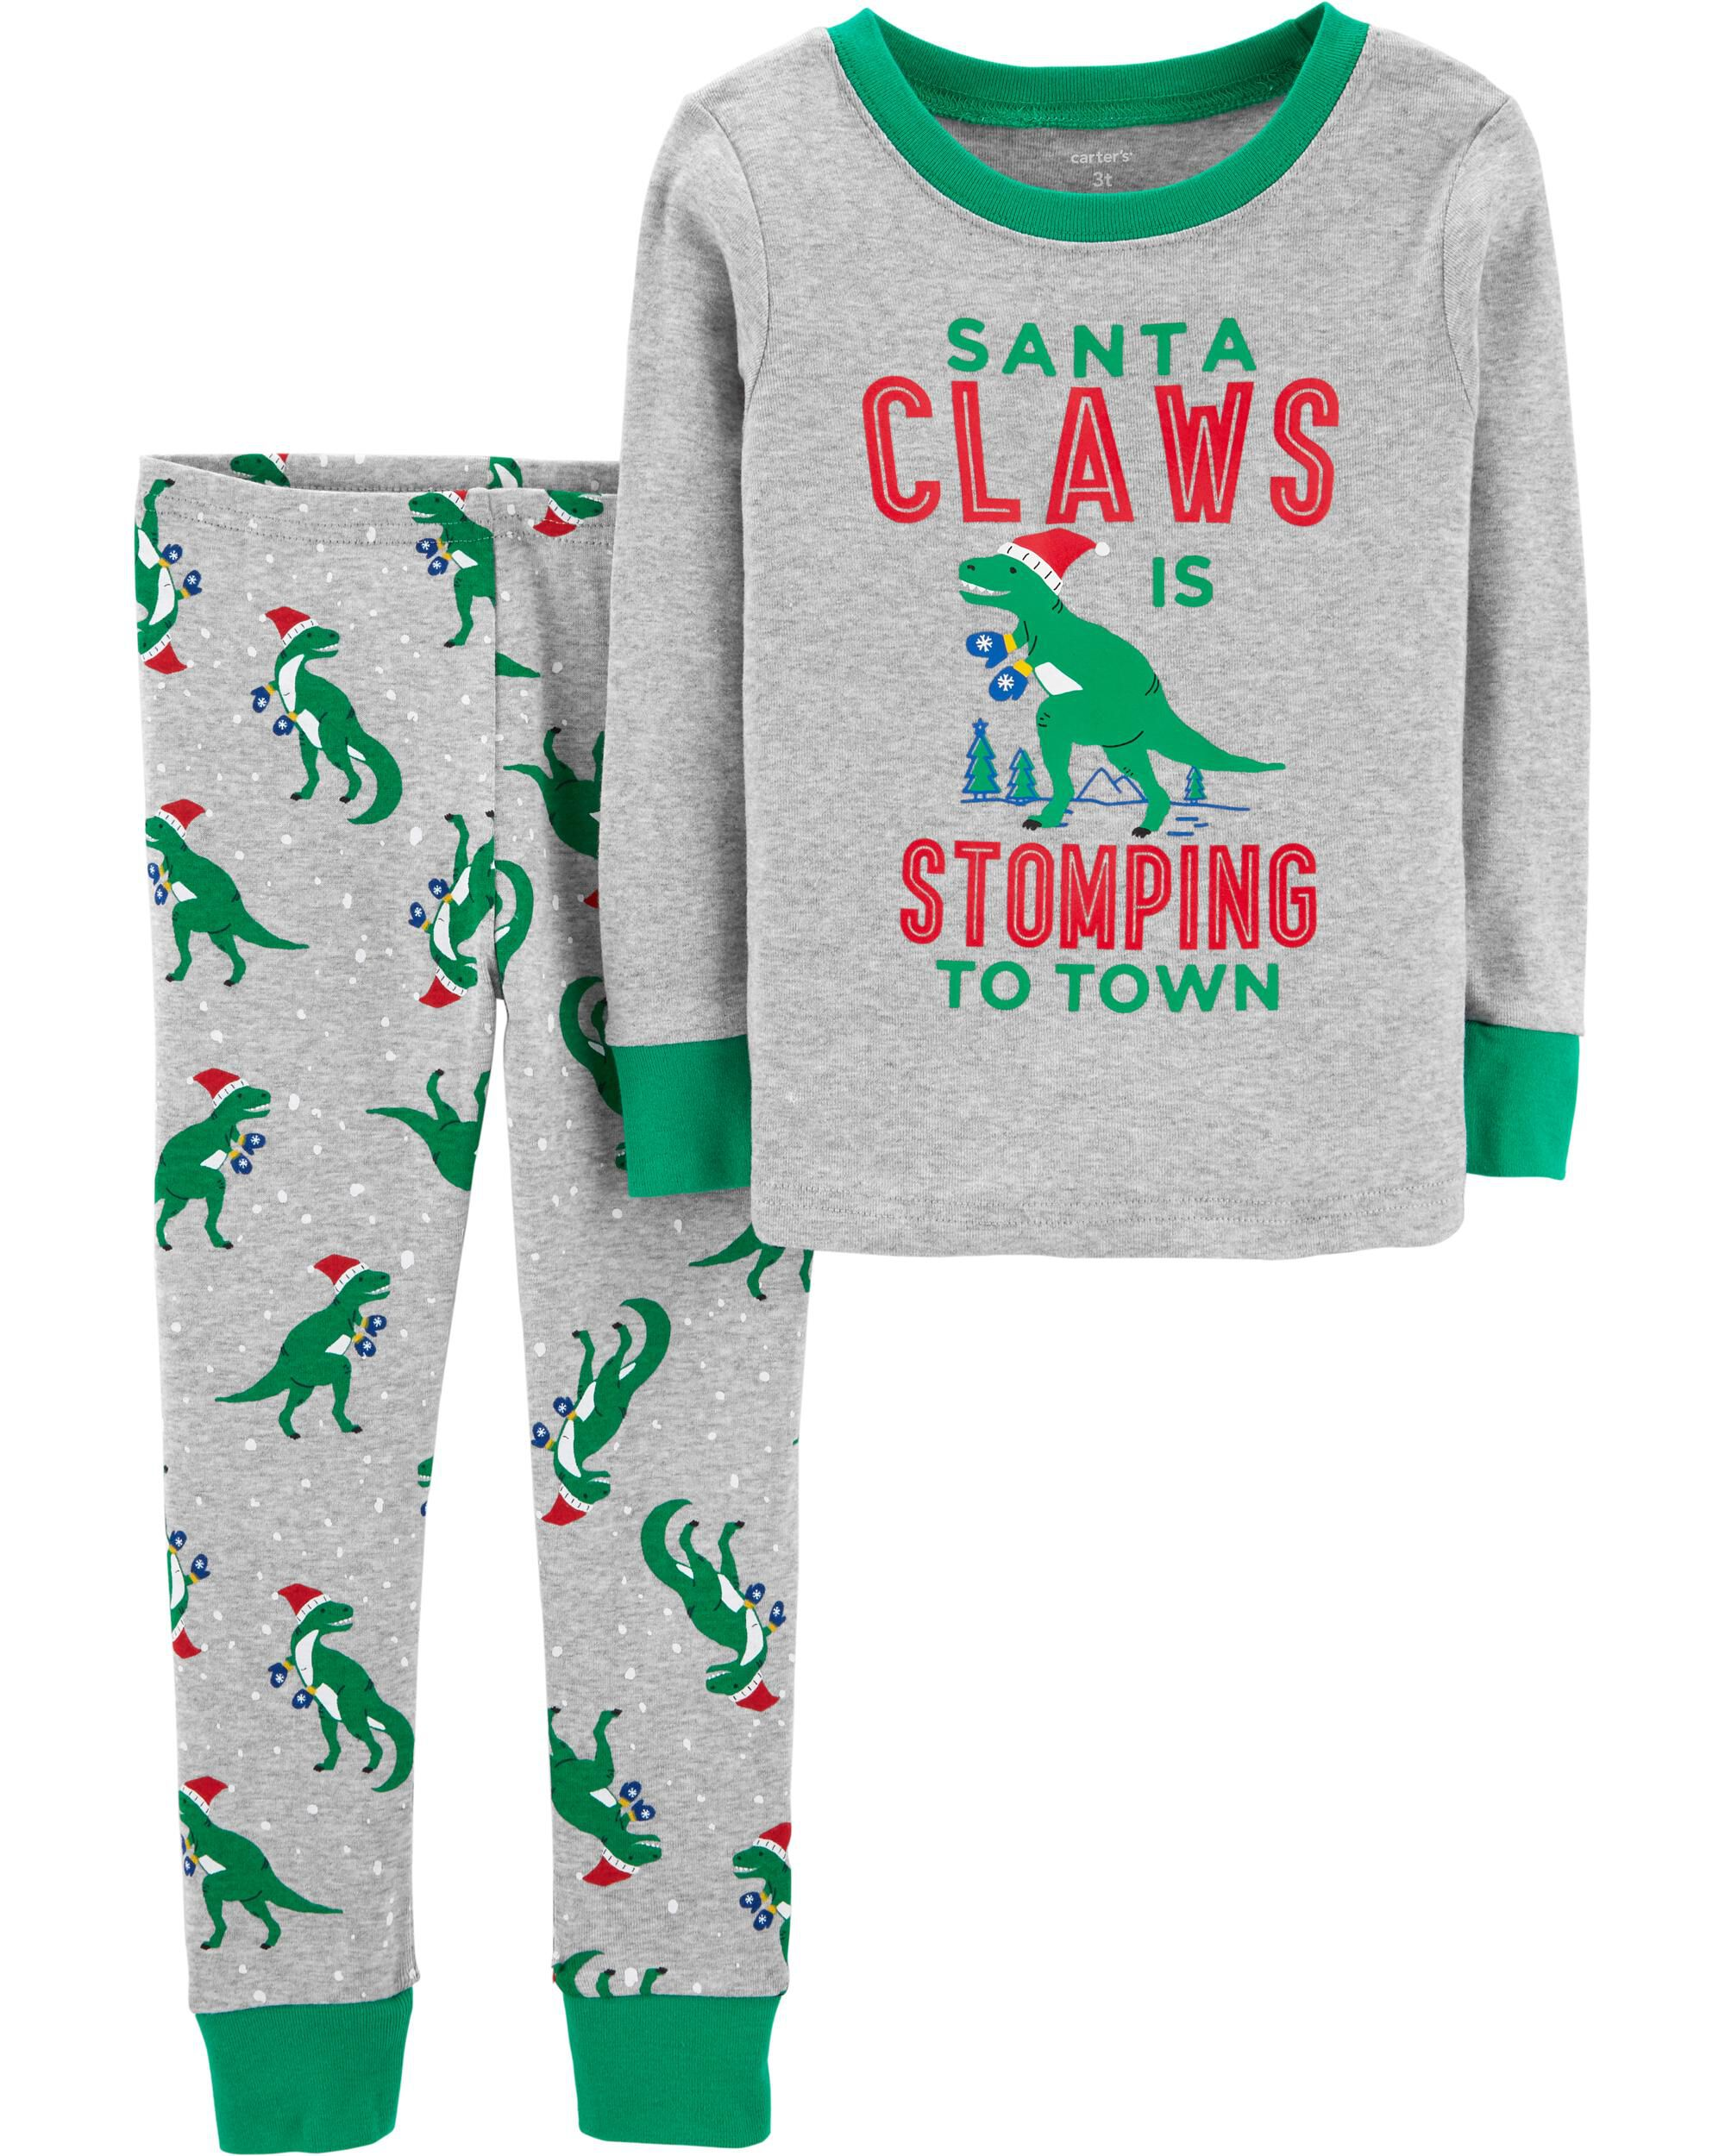 57ddcf483 2-Piece Christmas Snug Fit Cotton PJs